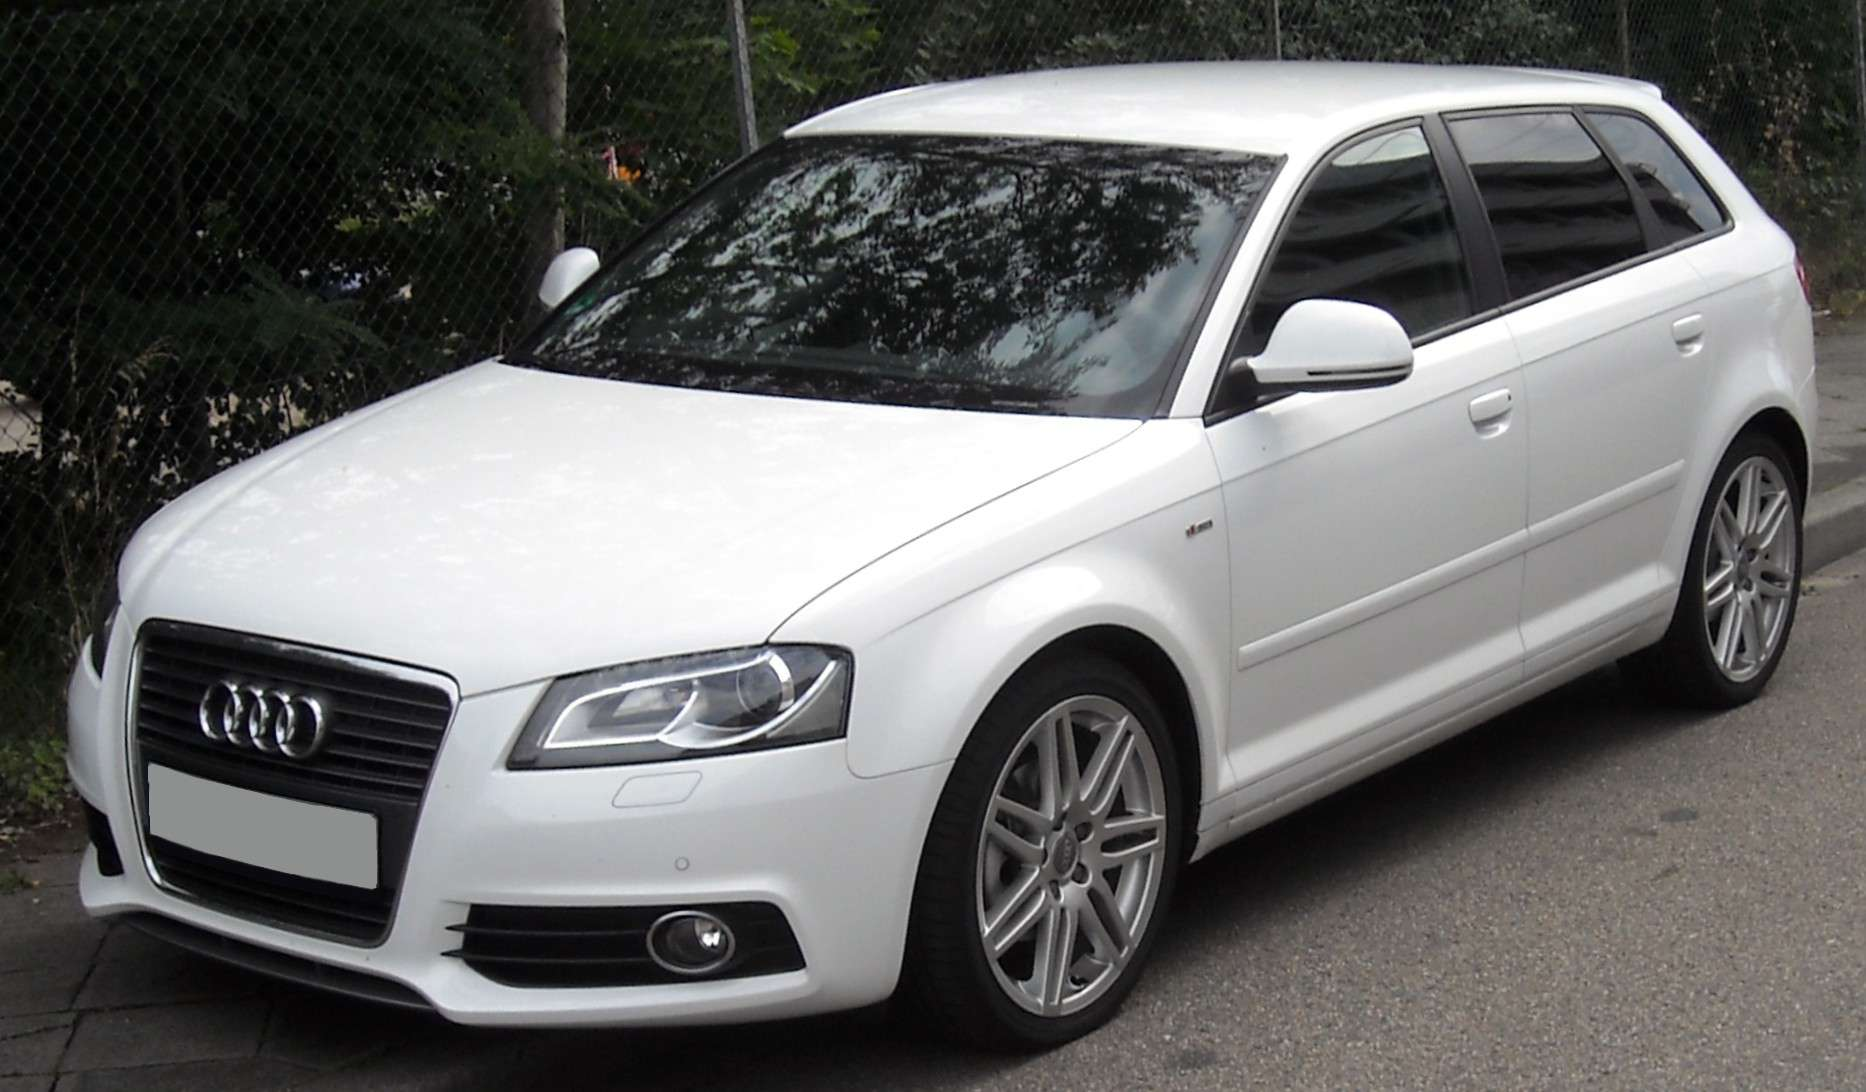 Audi A3 Steering Problems   POWER STEERING SERVICES